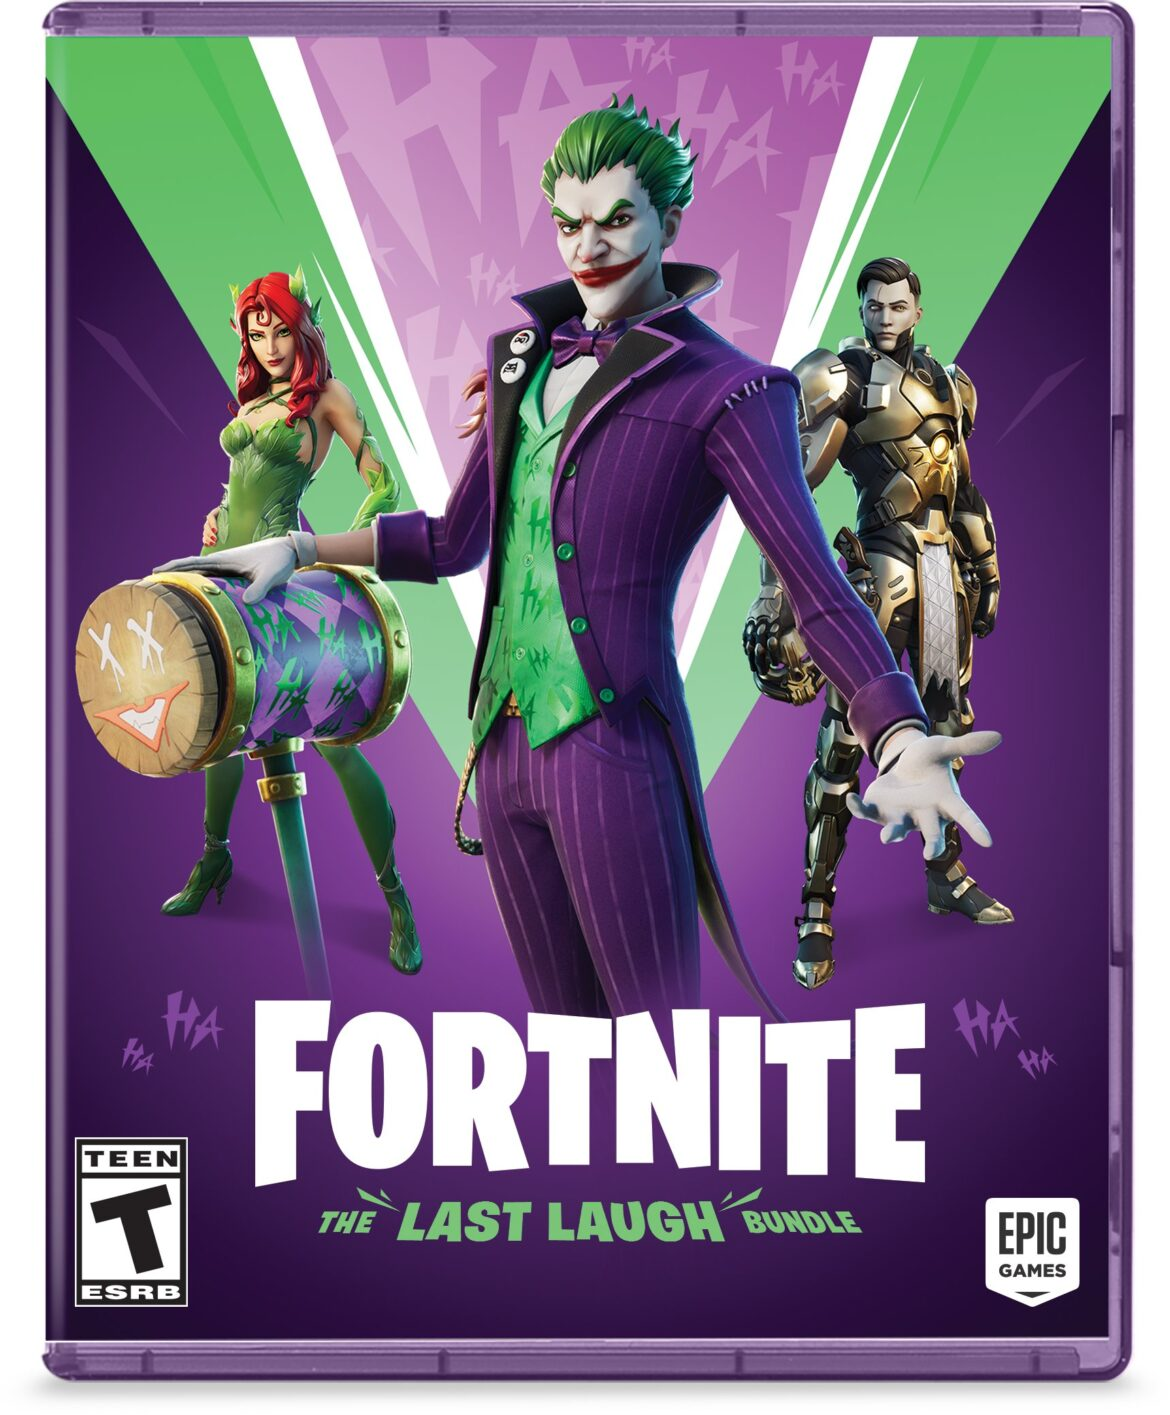 Joker and Poison Ivy Added to Fortnite in November